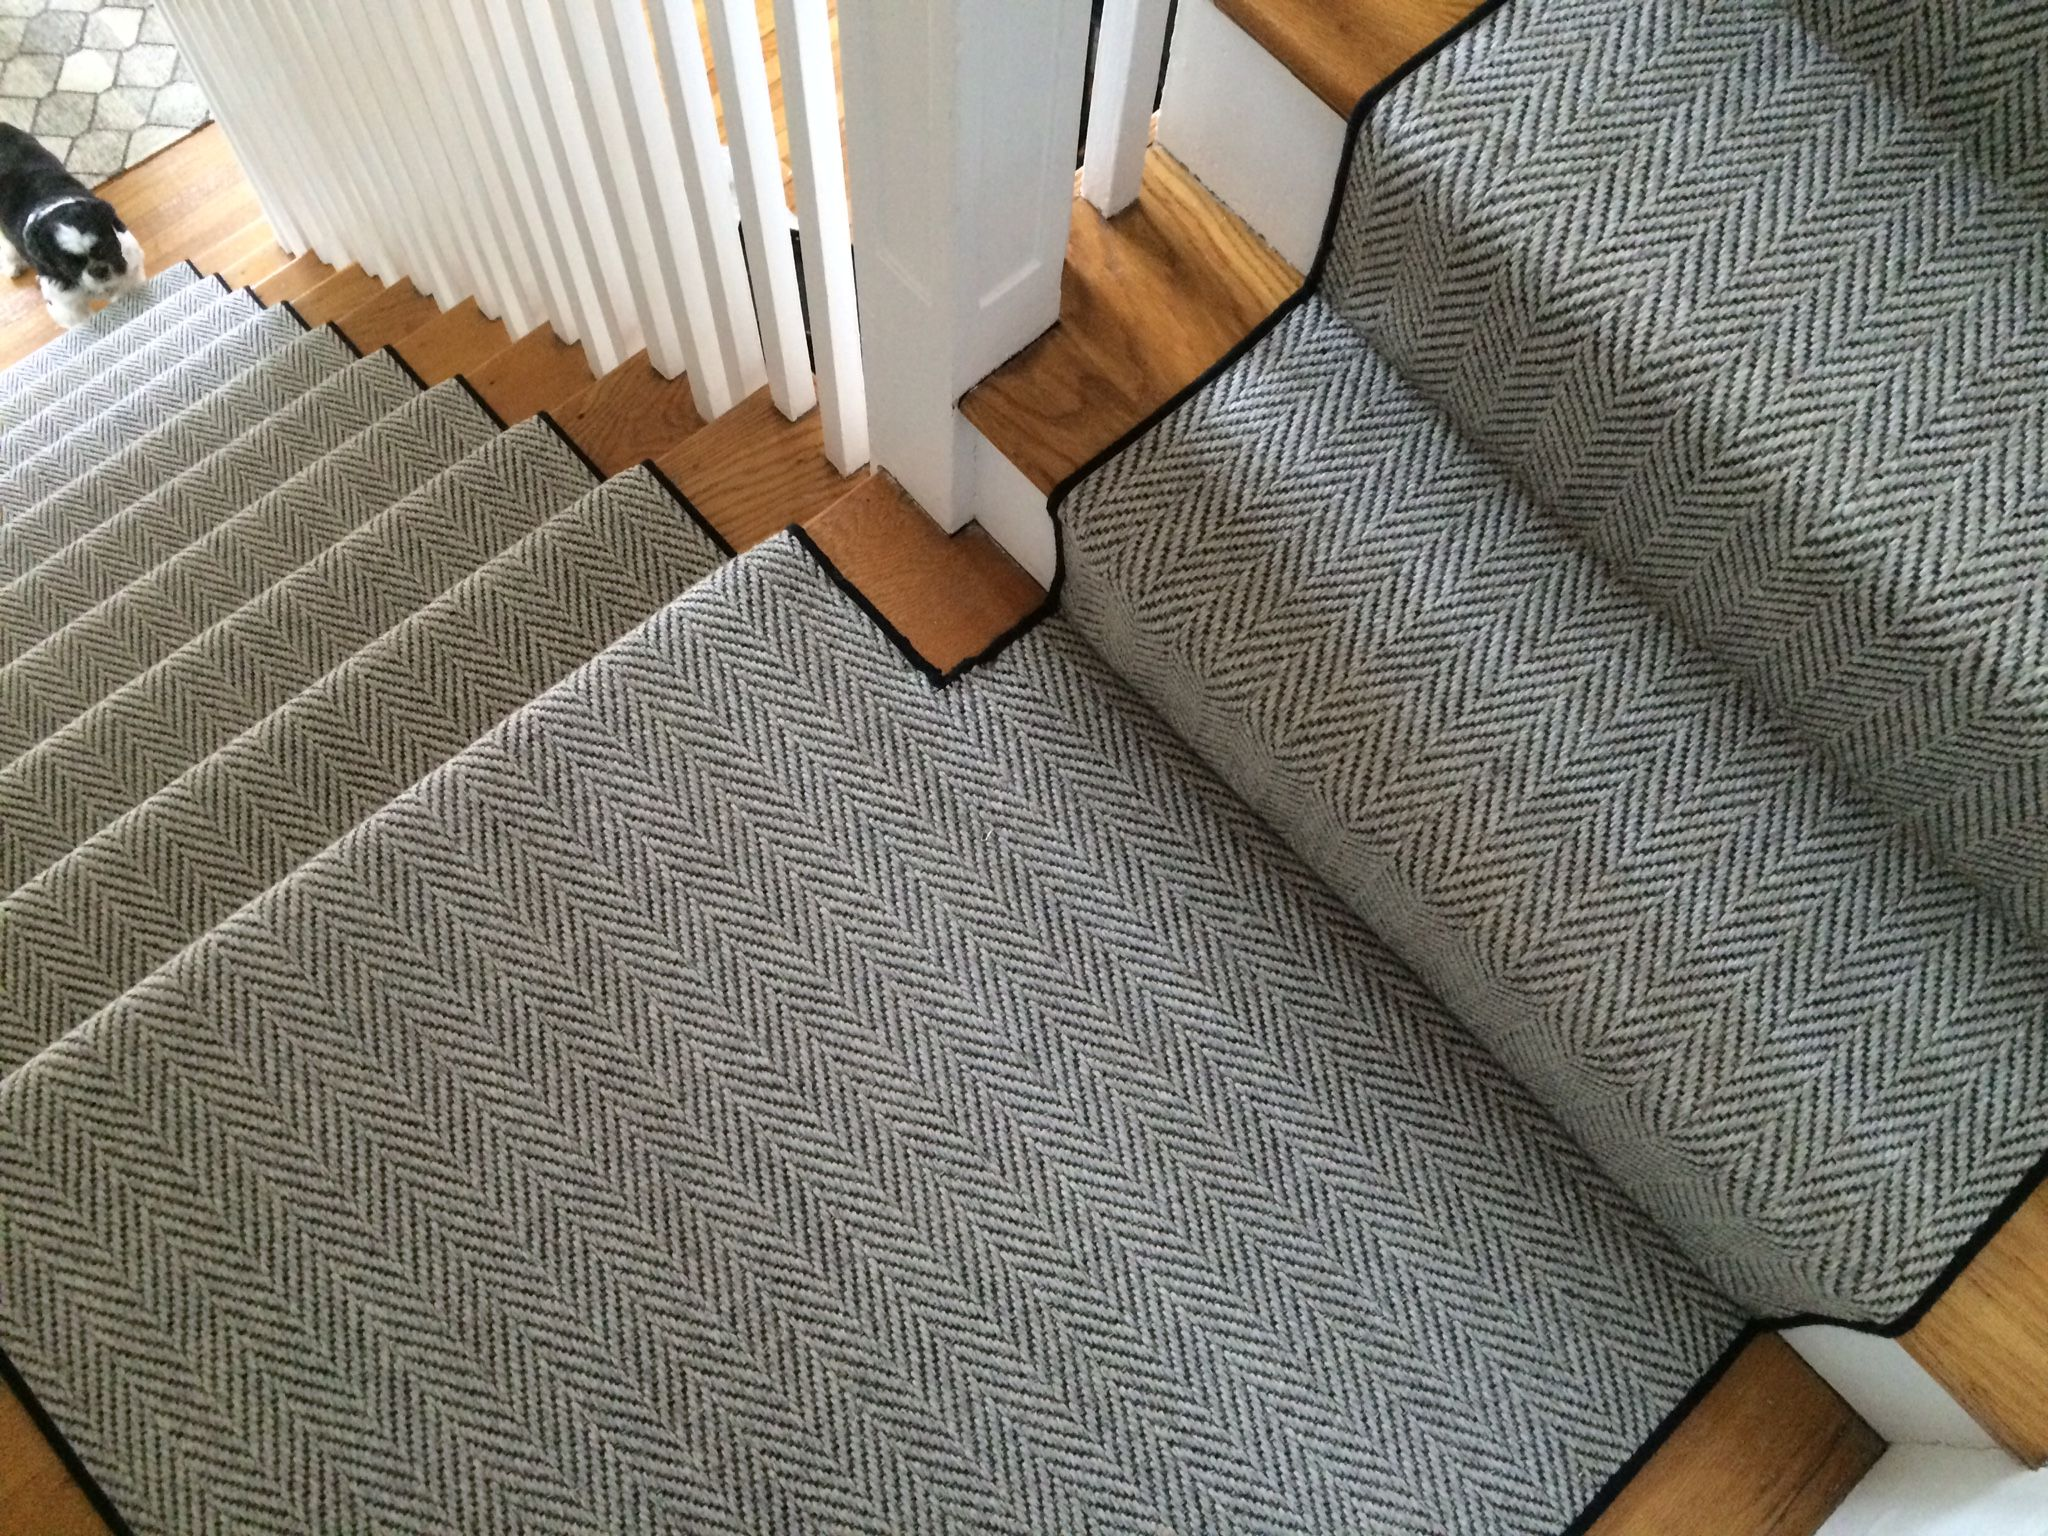 Herringbone Carpet Is One Of My Favorite Looks Because I Love The Herringbone Pattern And I Love Carpet Being Stair Runner Carpet Stair Runner Foyer Decorating